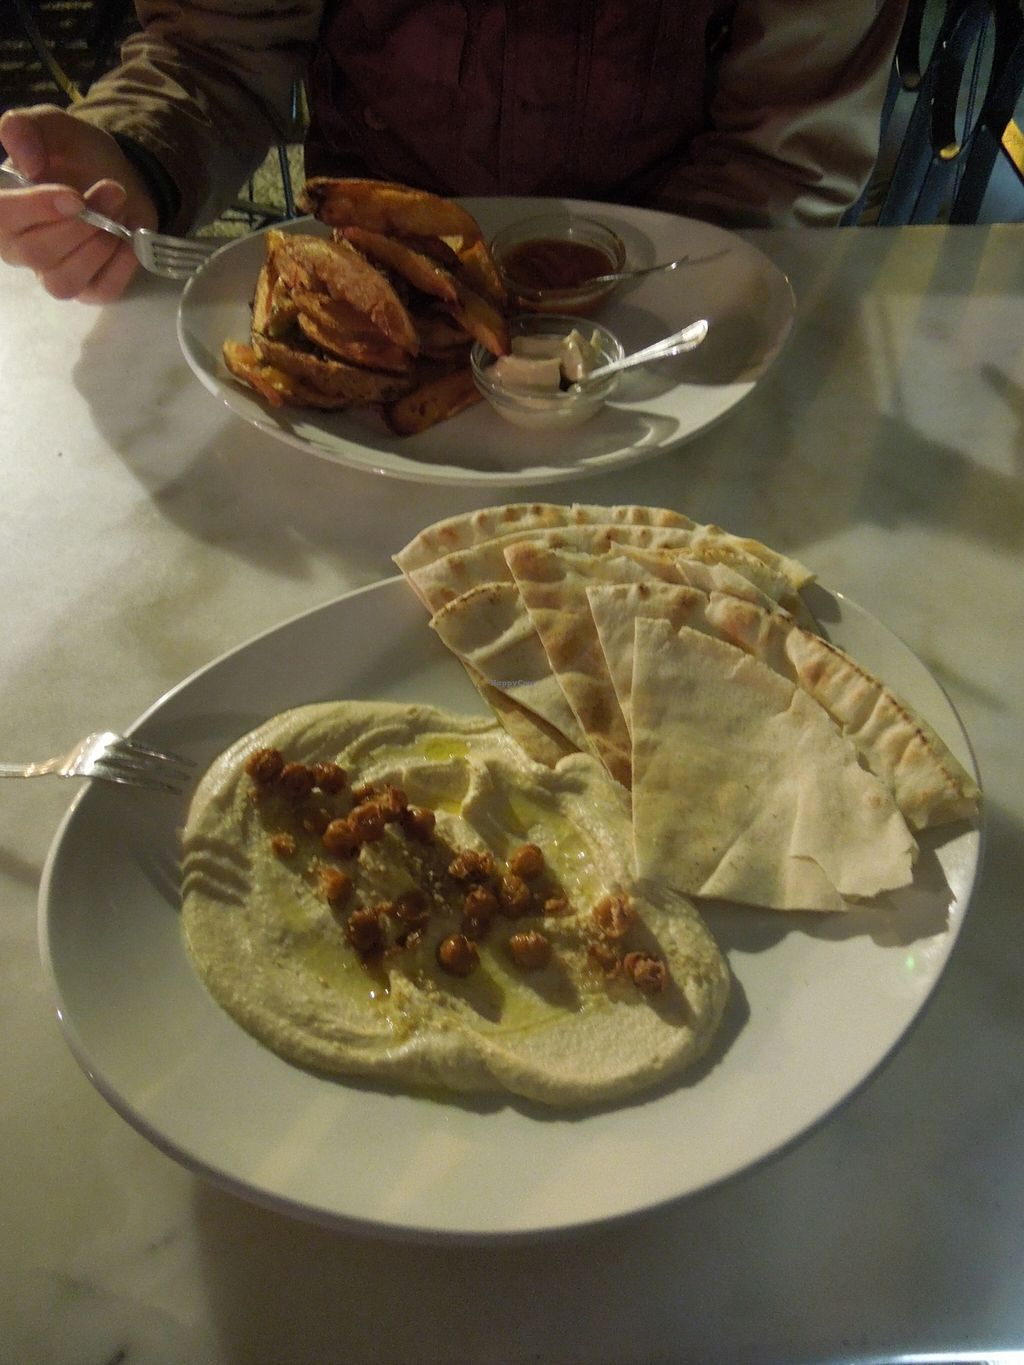 """Photo of Kafe Botanika  by <a href=""""/members/profile/ManuelaEden"""">ManuelaEden</a> <br/>02.16. Hummus with Pita 8,50€ Potato wedges 7€ both very yummy, especially the dips for the wedges were soo good.  <br/> March 1, 2016  - <a href='/contact/abuse/image/54380/138336'>Report</a>"""